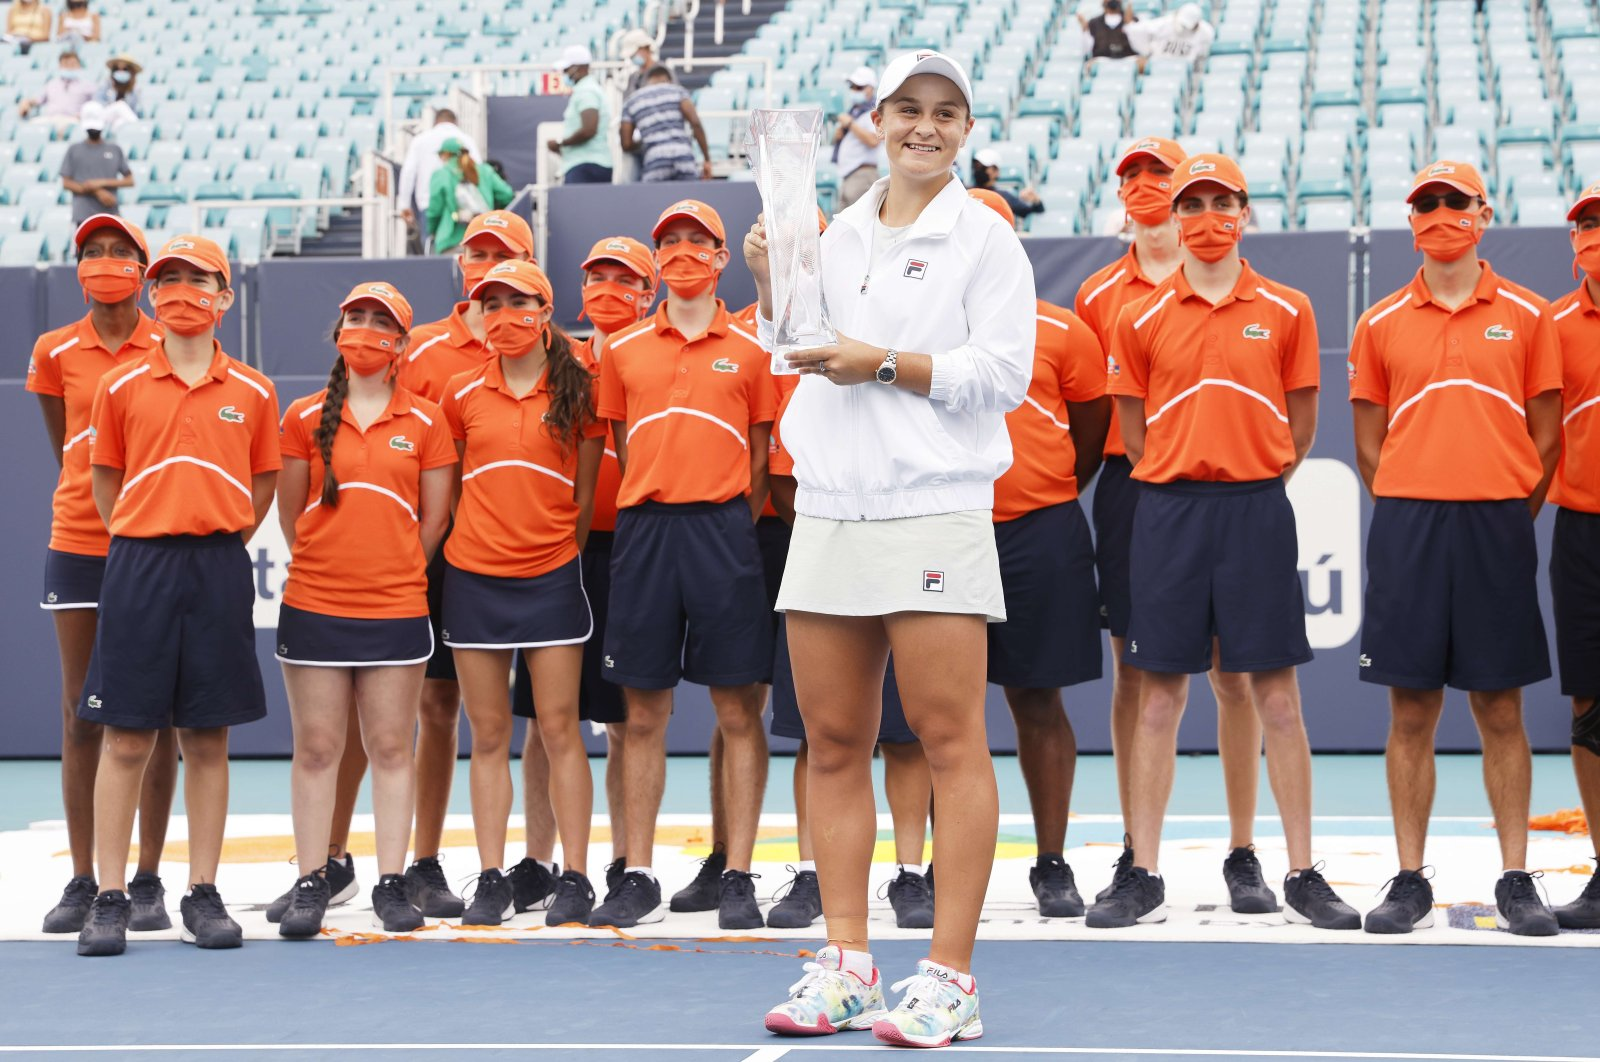 Ashleigh Barty of Australia poses with the winner's trophy after defeating Bianca Andreescu of Canada during the final of the Miami Open at Hard Rock Stadium on April 03, 2021 in Miami Gardens, Florida. (Michael Reaves/Getty Images via AFP)